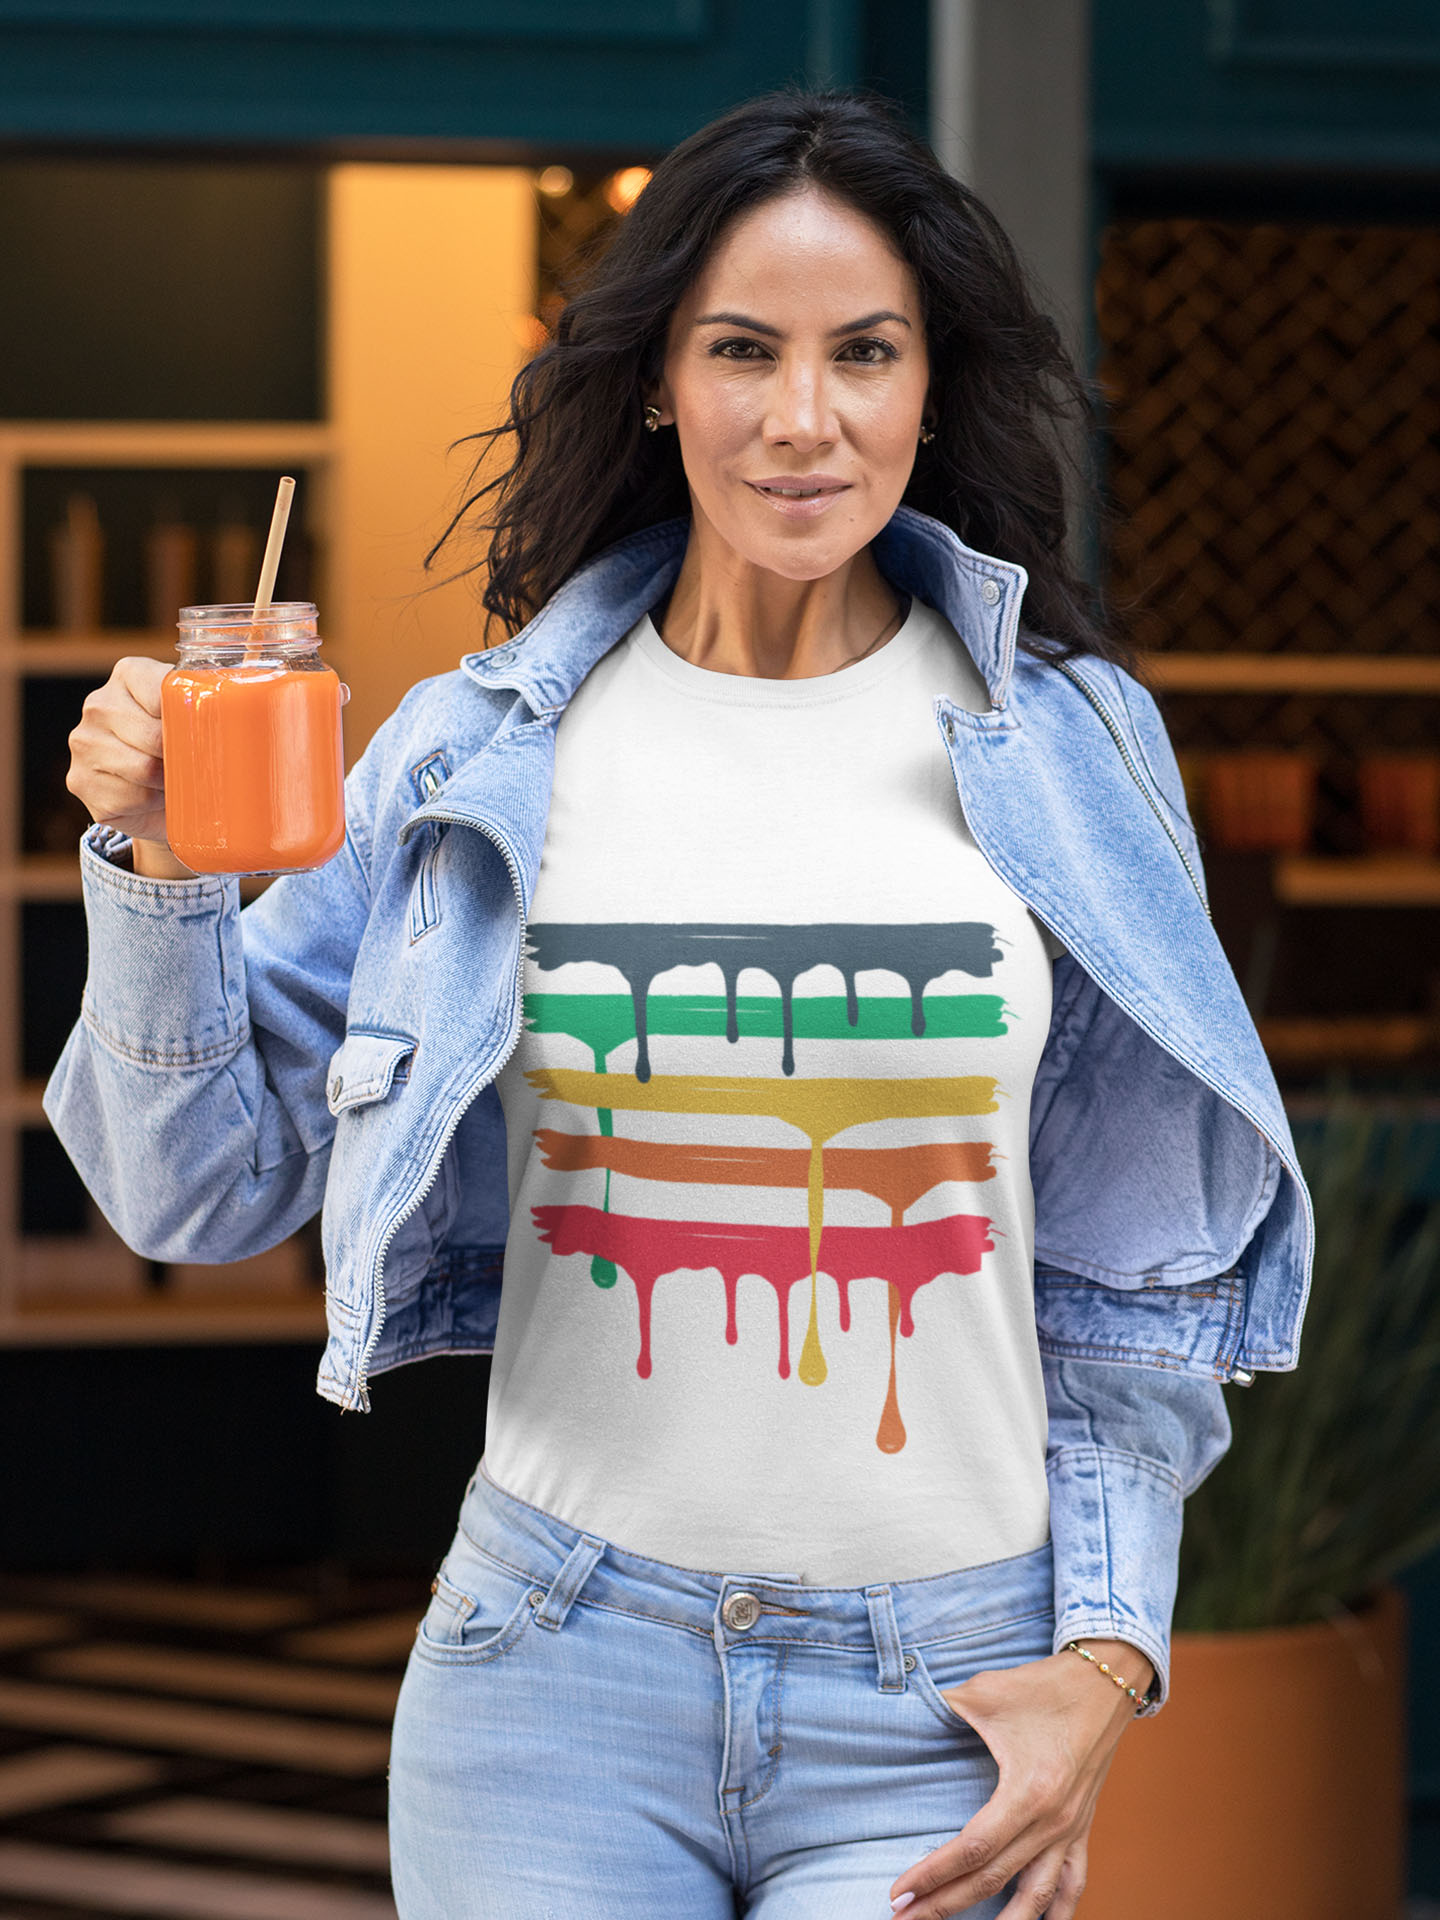 Spredshirt-Prints-Trailfire_0002_tee-mockup-of-a-fit-woman-holding-a-juice-32772